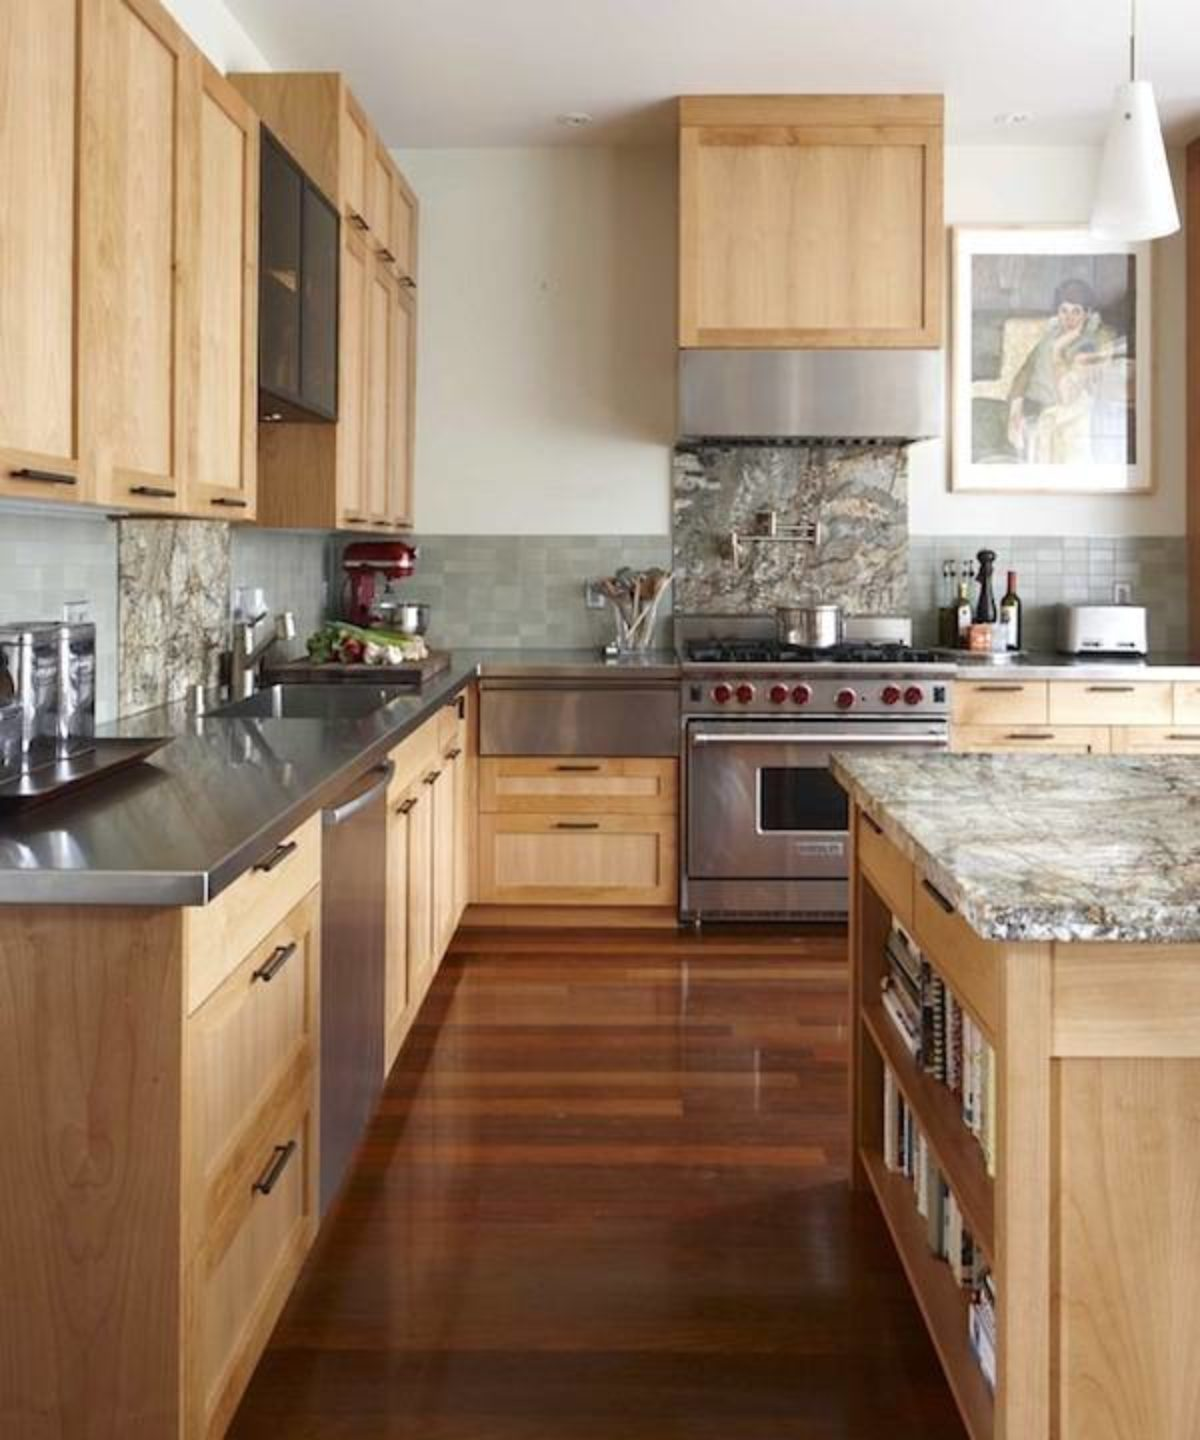 Complete Guides Of Average Cost To Reface Kitchen Cabinets